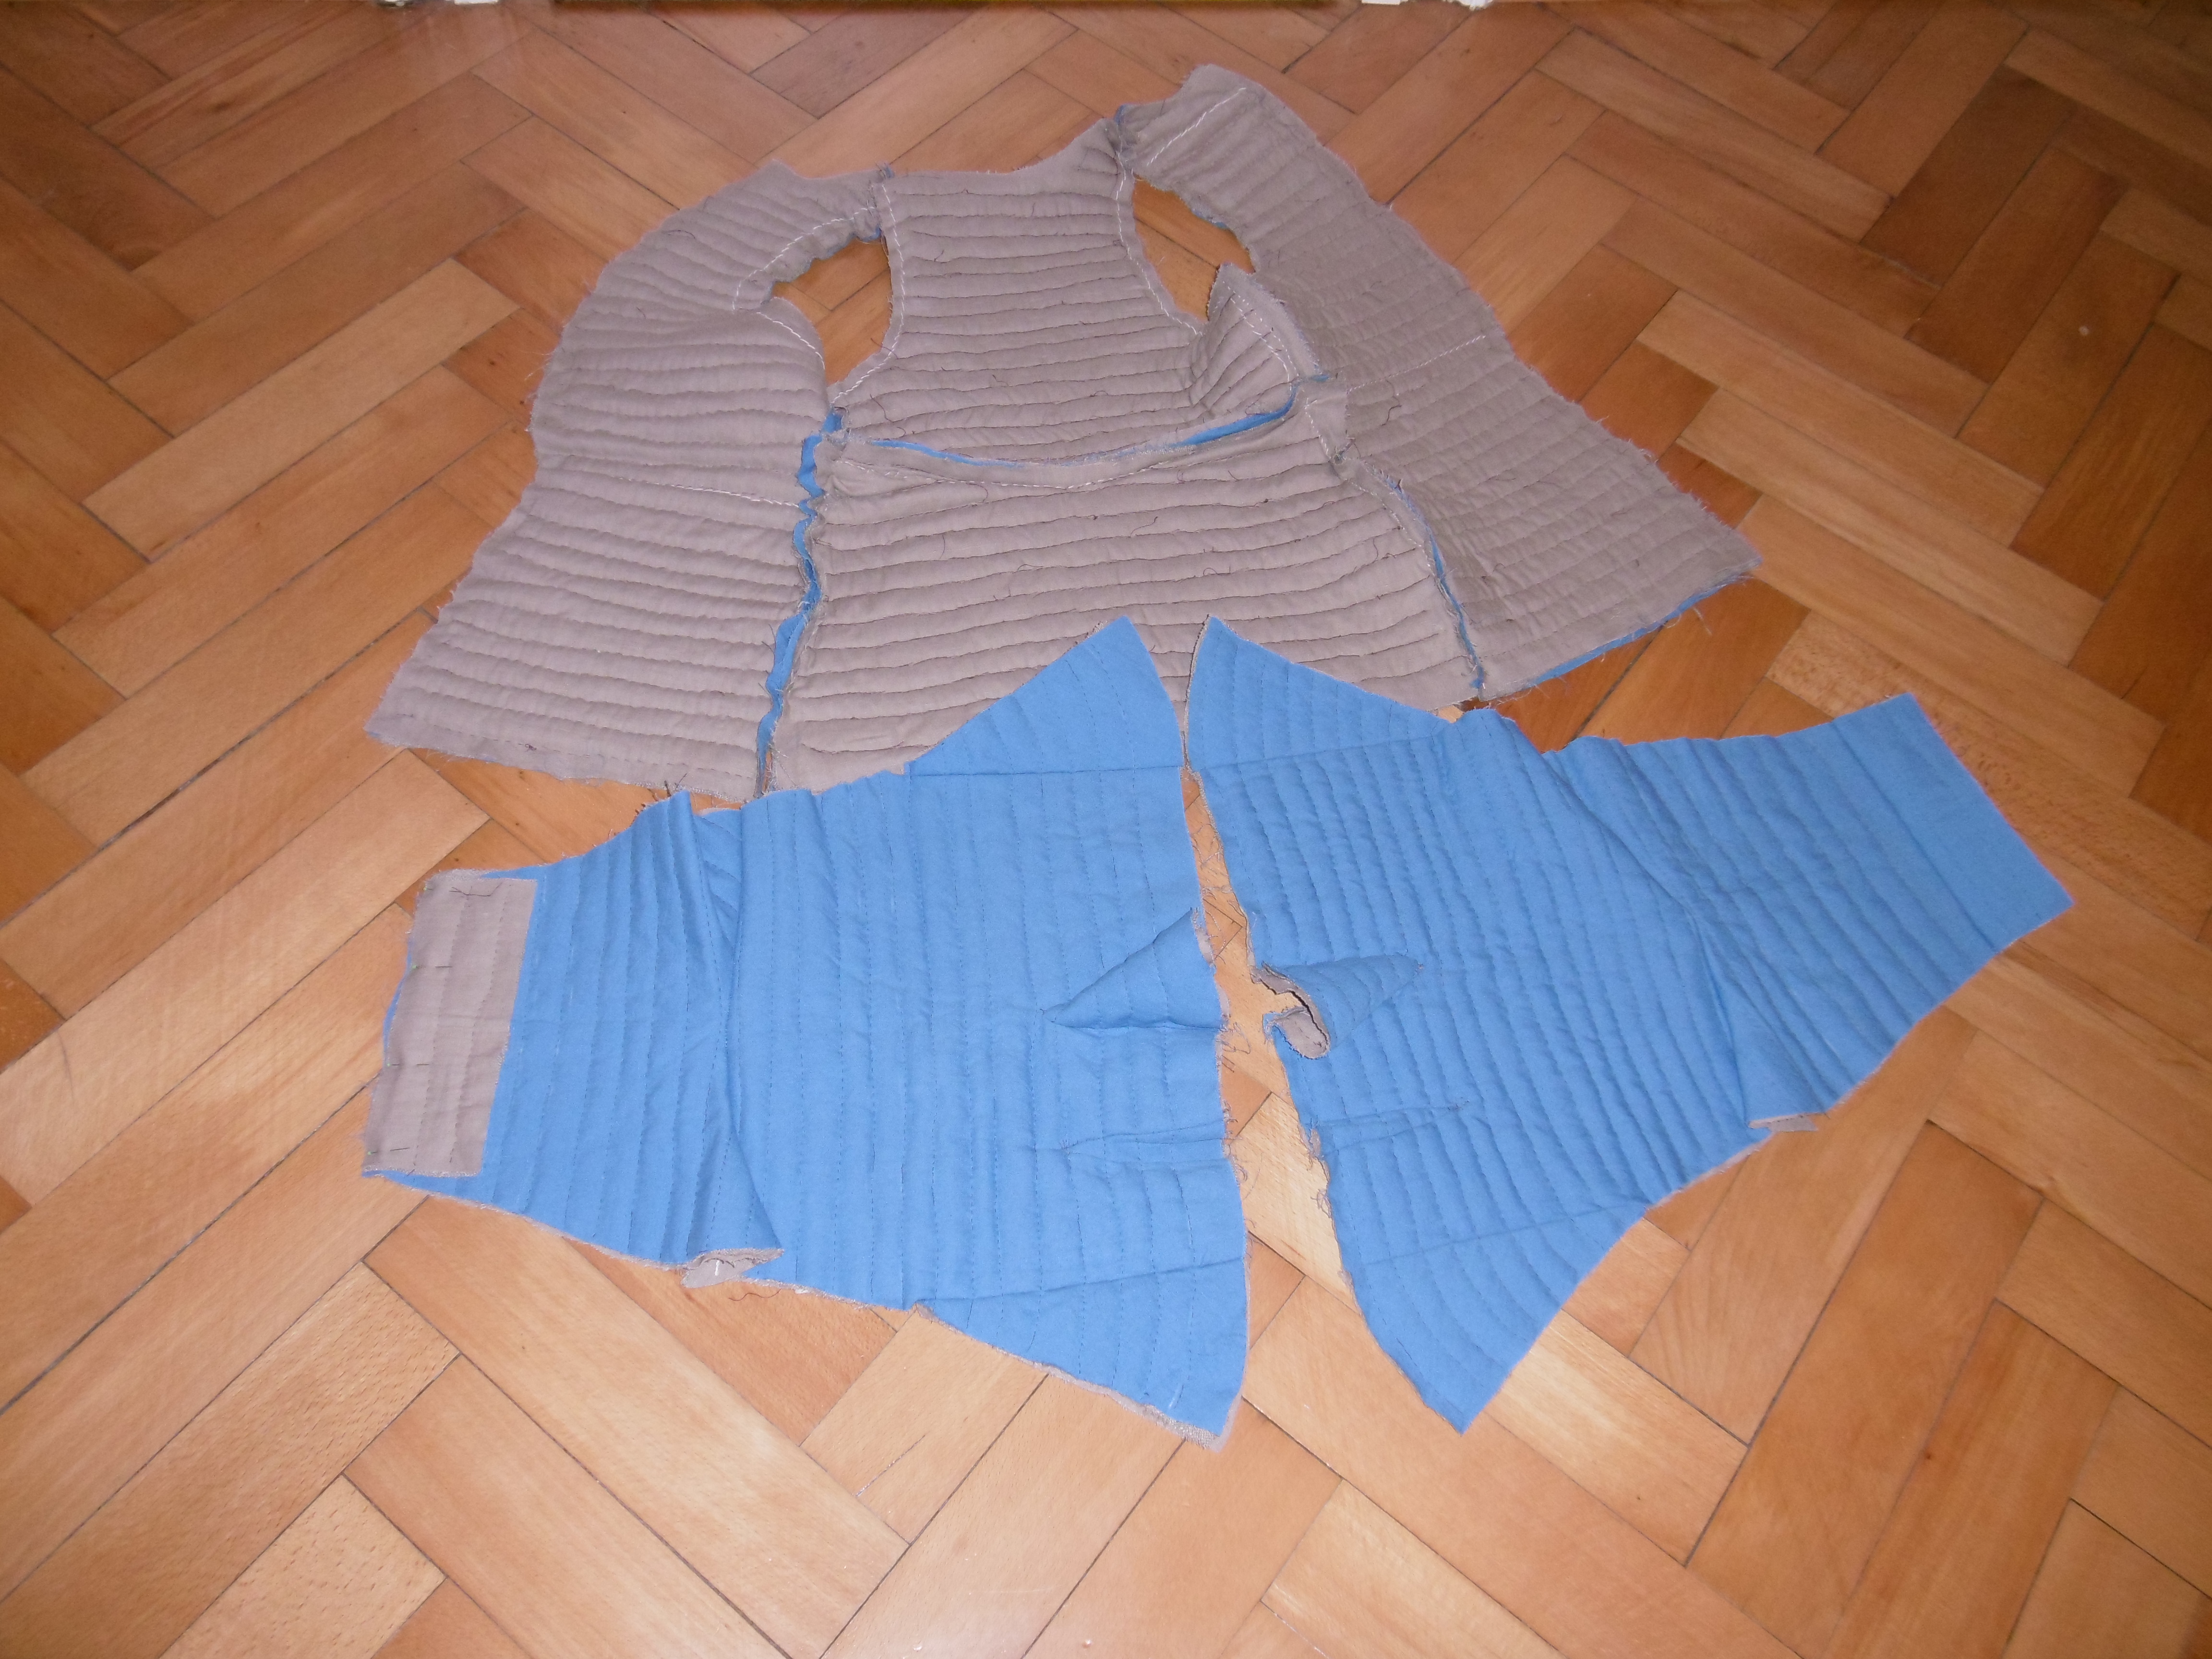 Components of a quilted doublet spread on the floor showing all parts assembled with the proper layers inside and outside